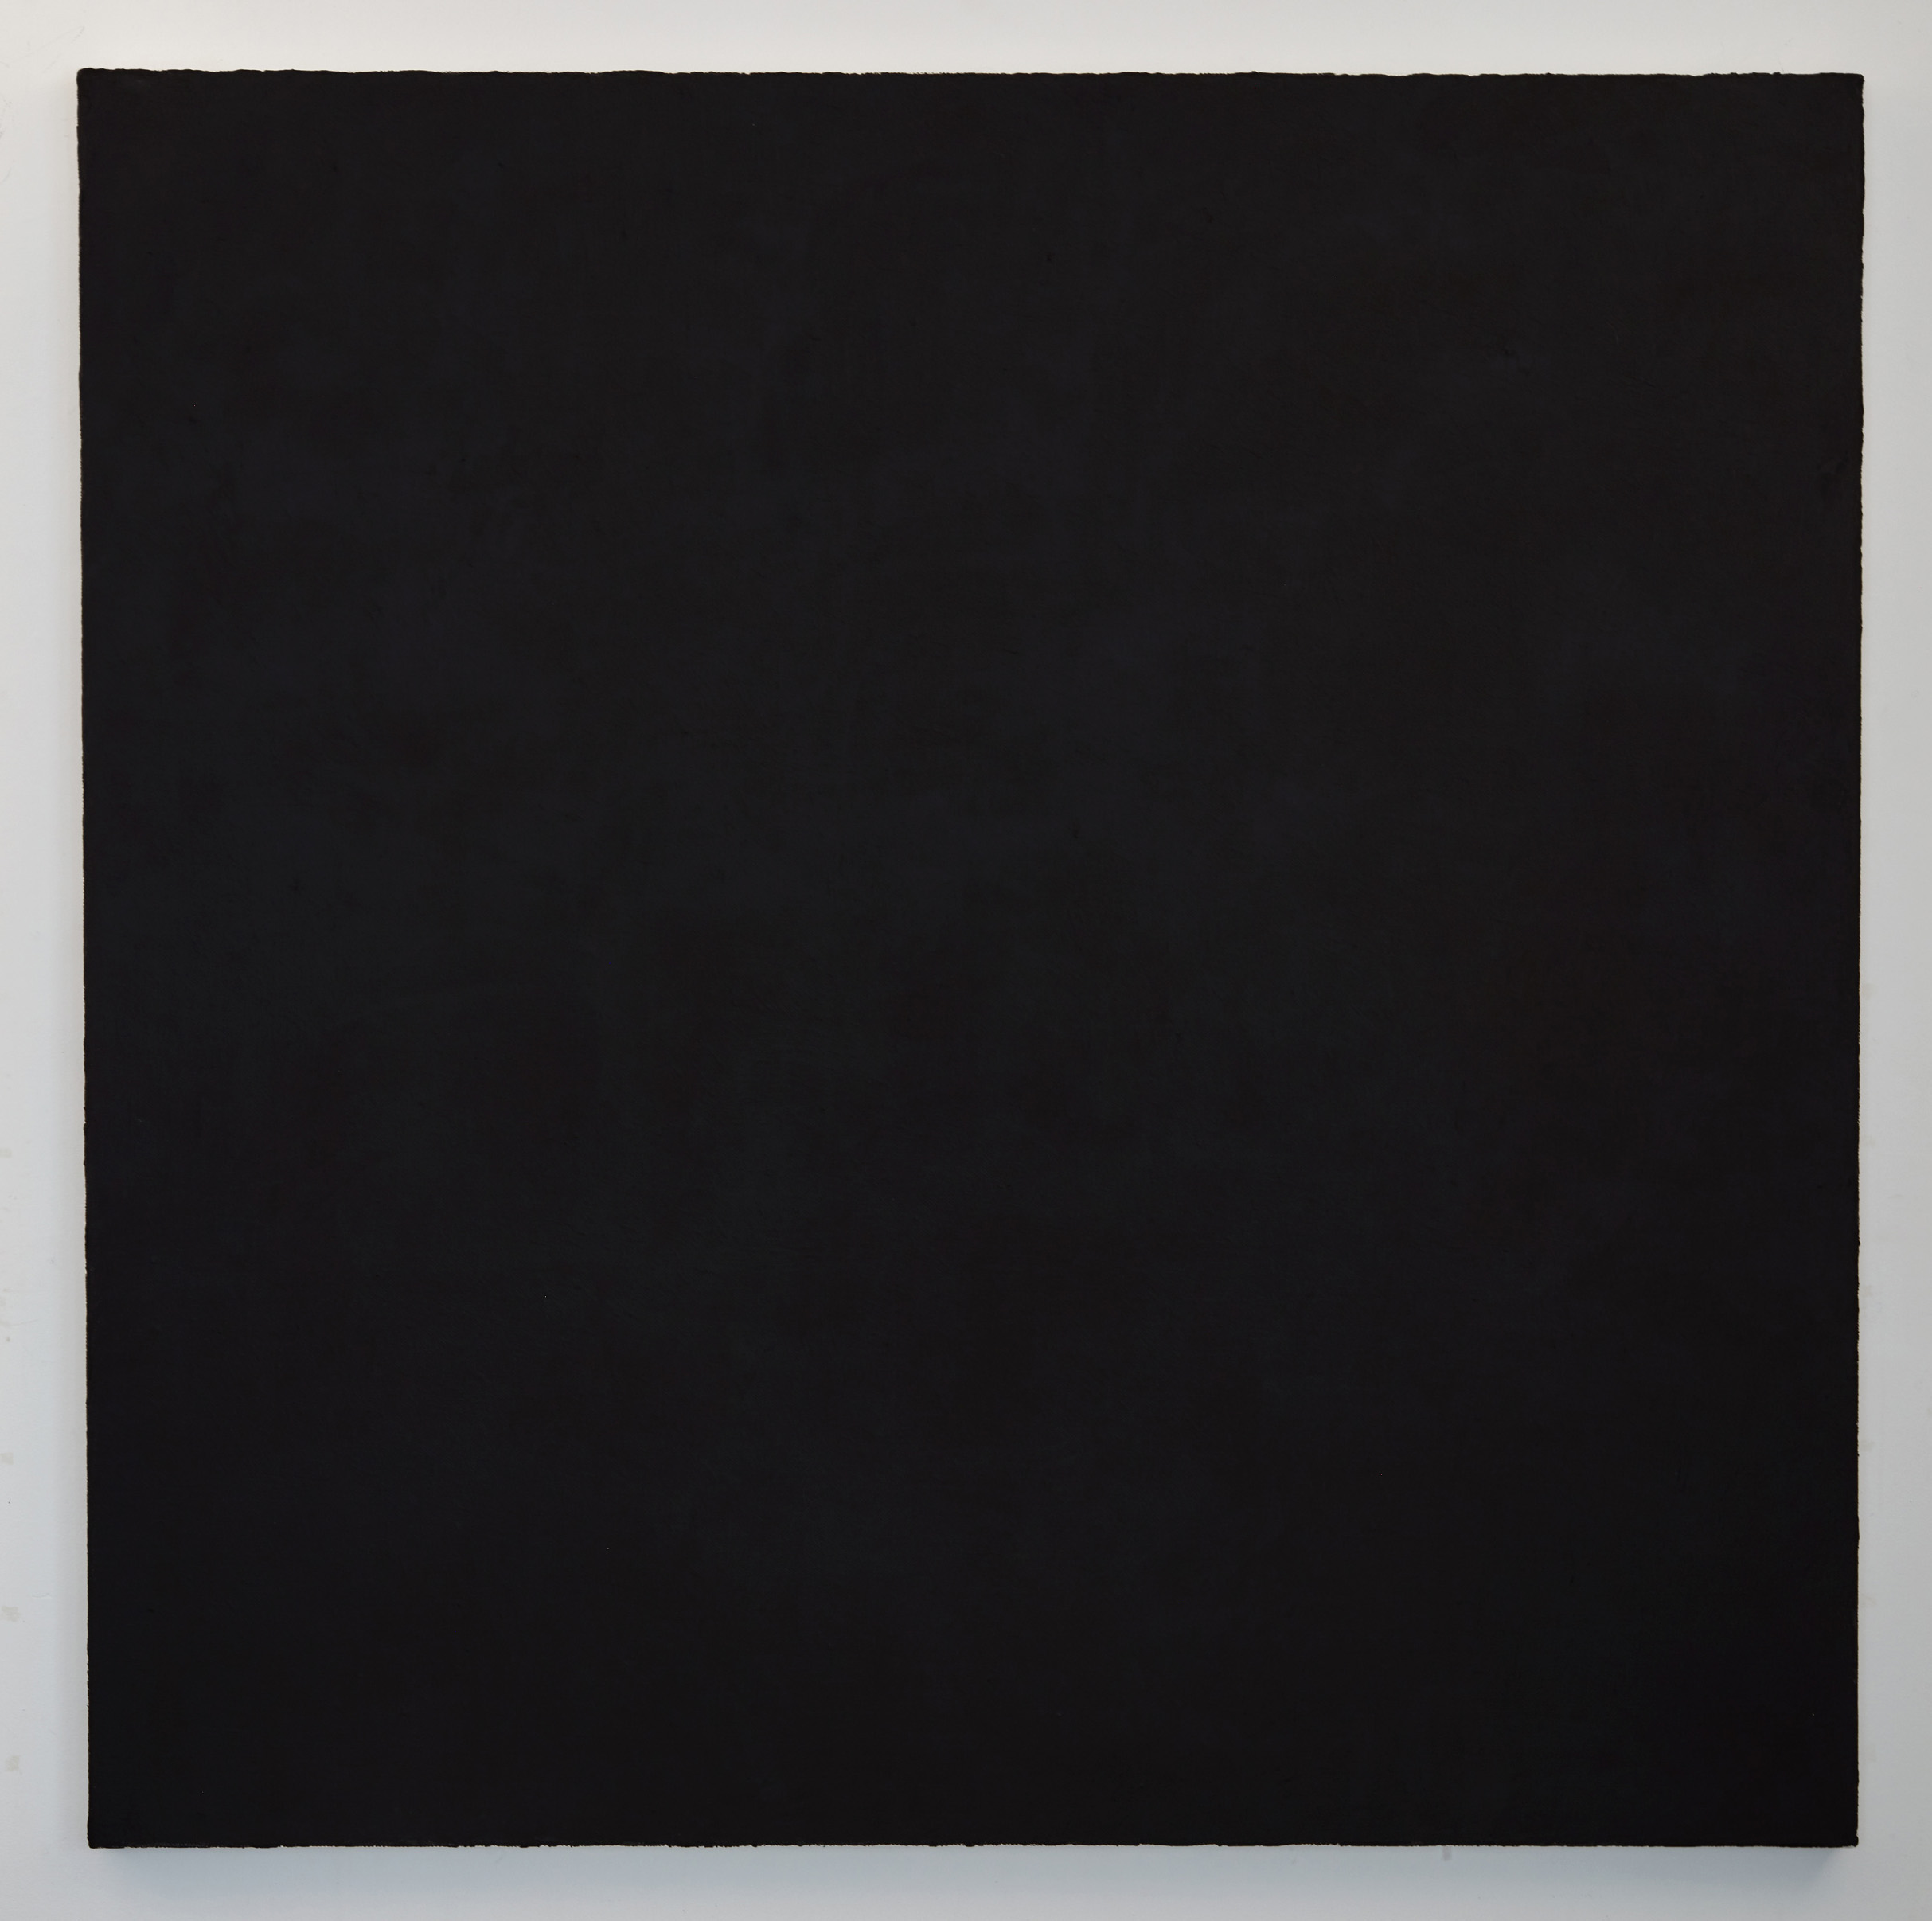 DAVID SERISIER  graphite black oxide painting 1 , 2018 oil and wax on linen 200.5 x 200.5 cm